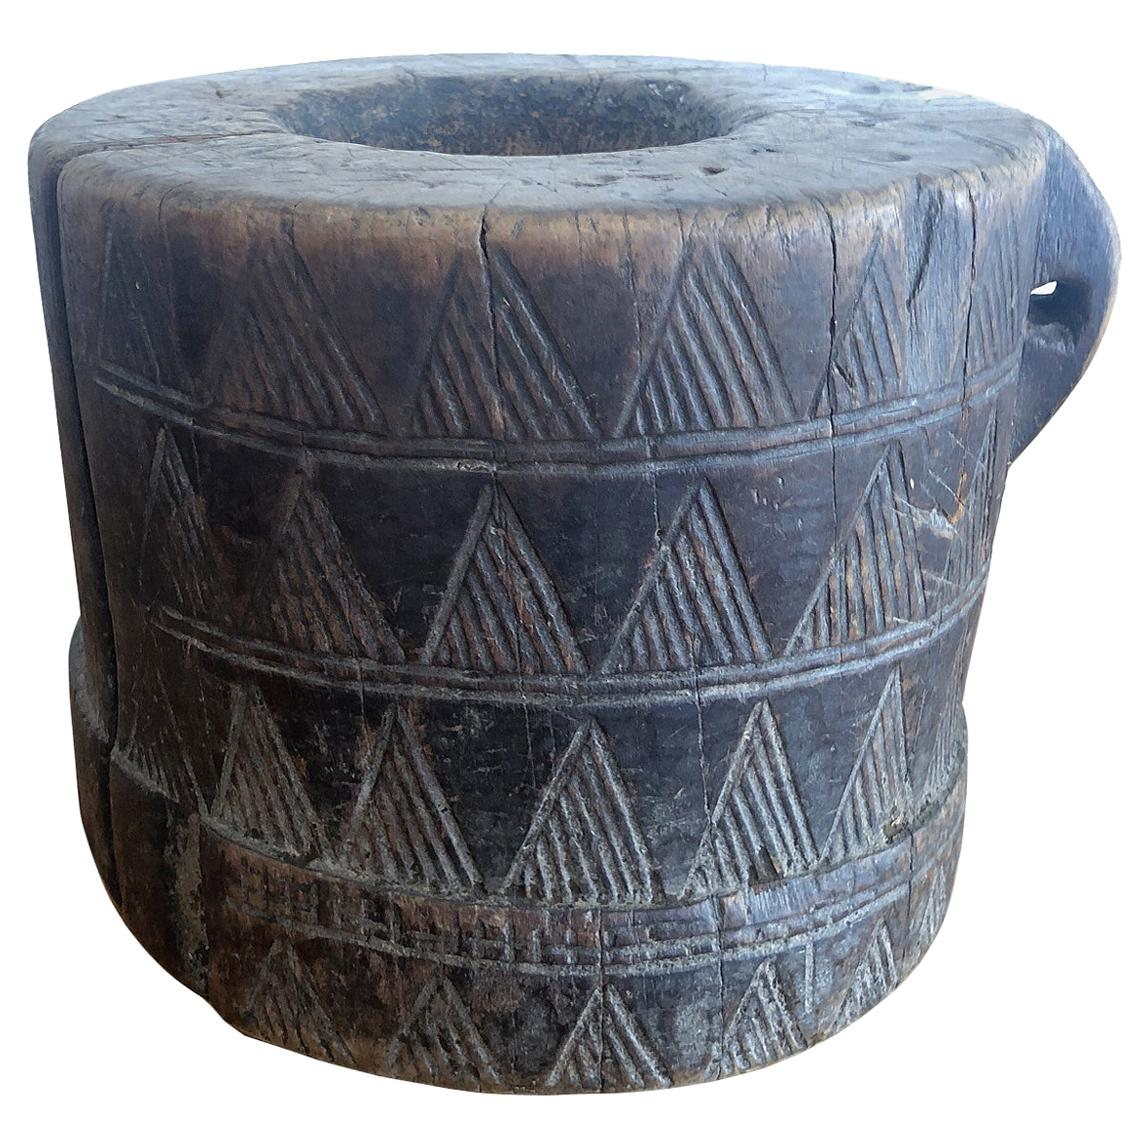 African Tribal Coffee Mortar in Carved Wood from the Kaffa People in Ethiopia